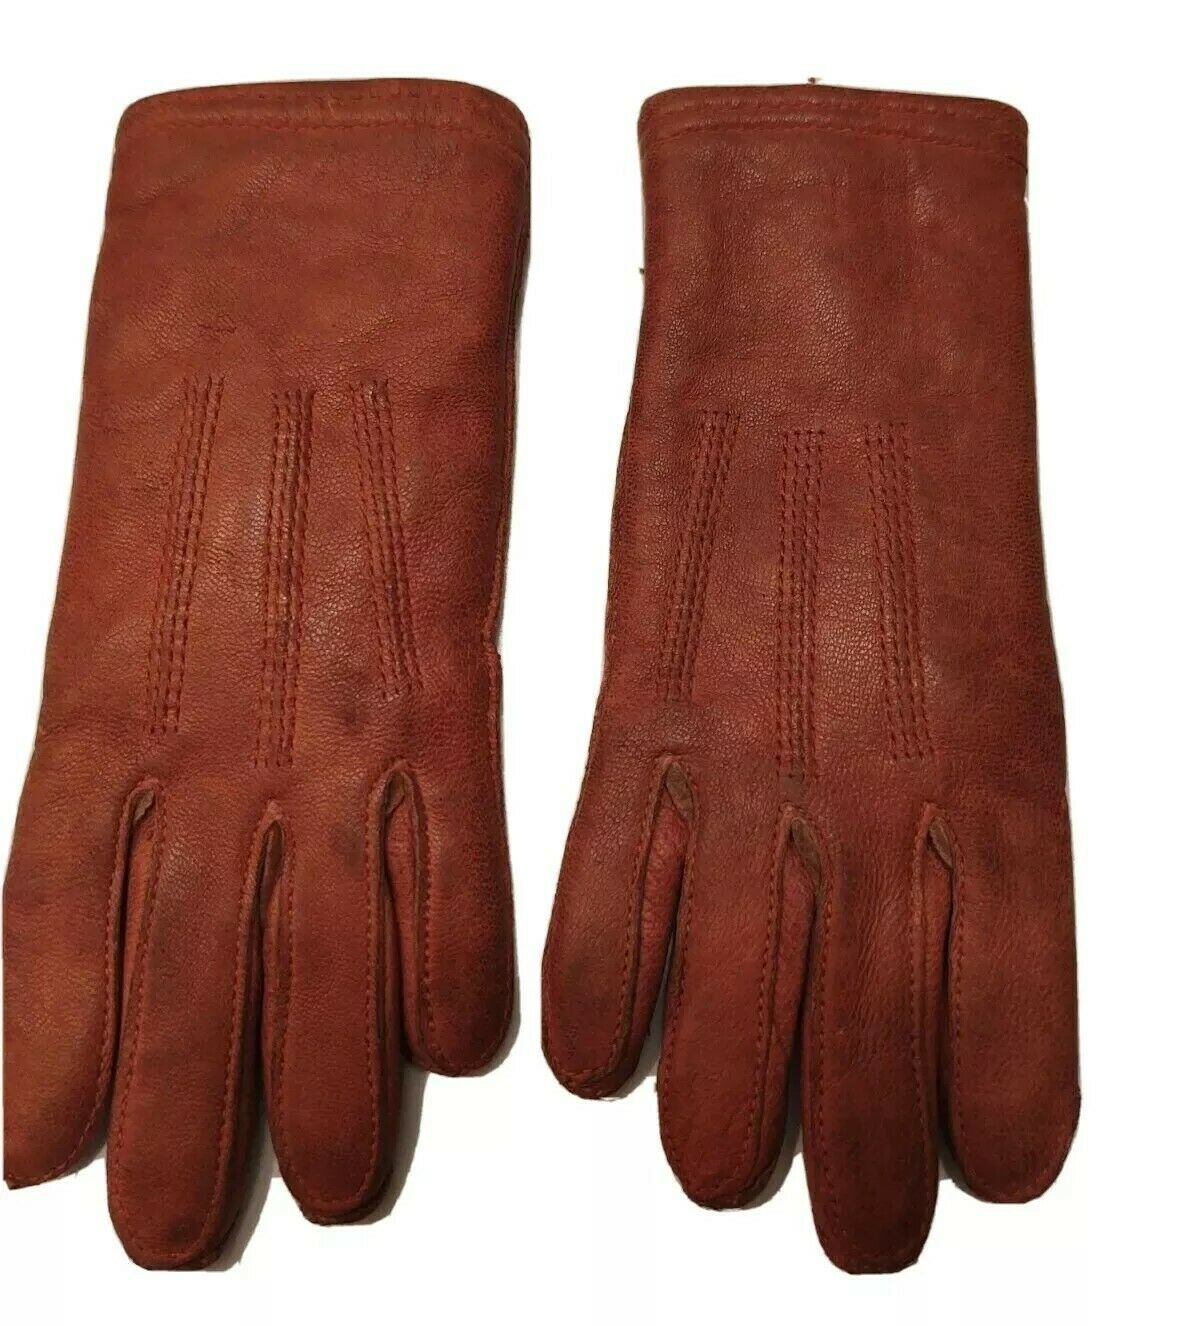 **Antique Tiny Child Early 1900 - Vintage Leather Gloves.